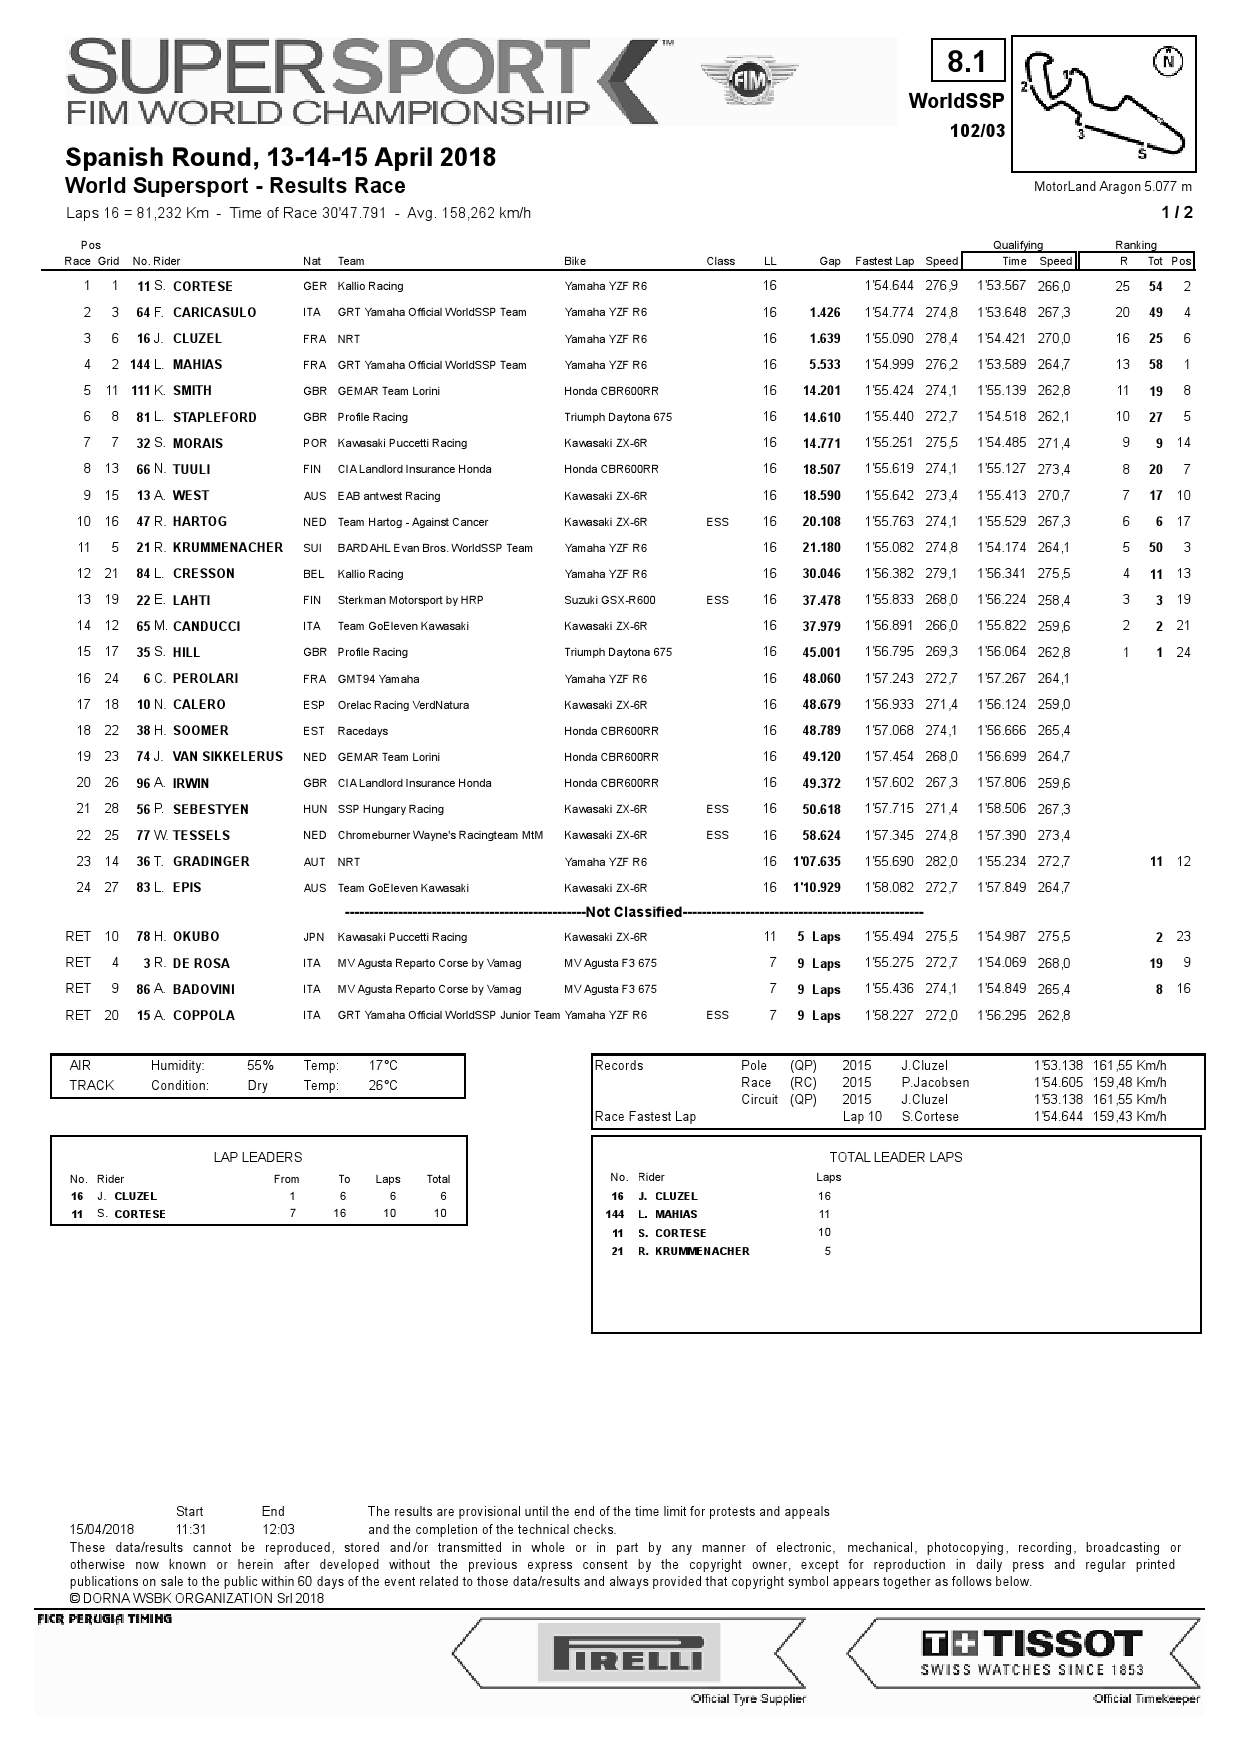 Результаты 3-го этапа World Supersport, Motorland Aragon, 15/04/2018